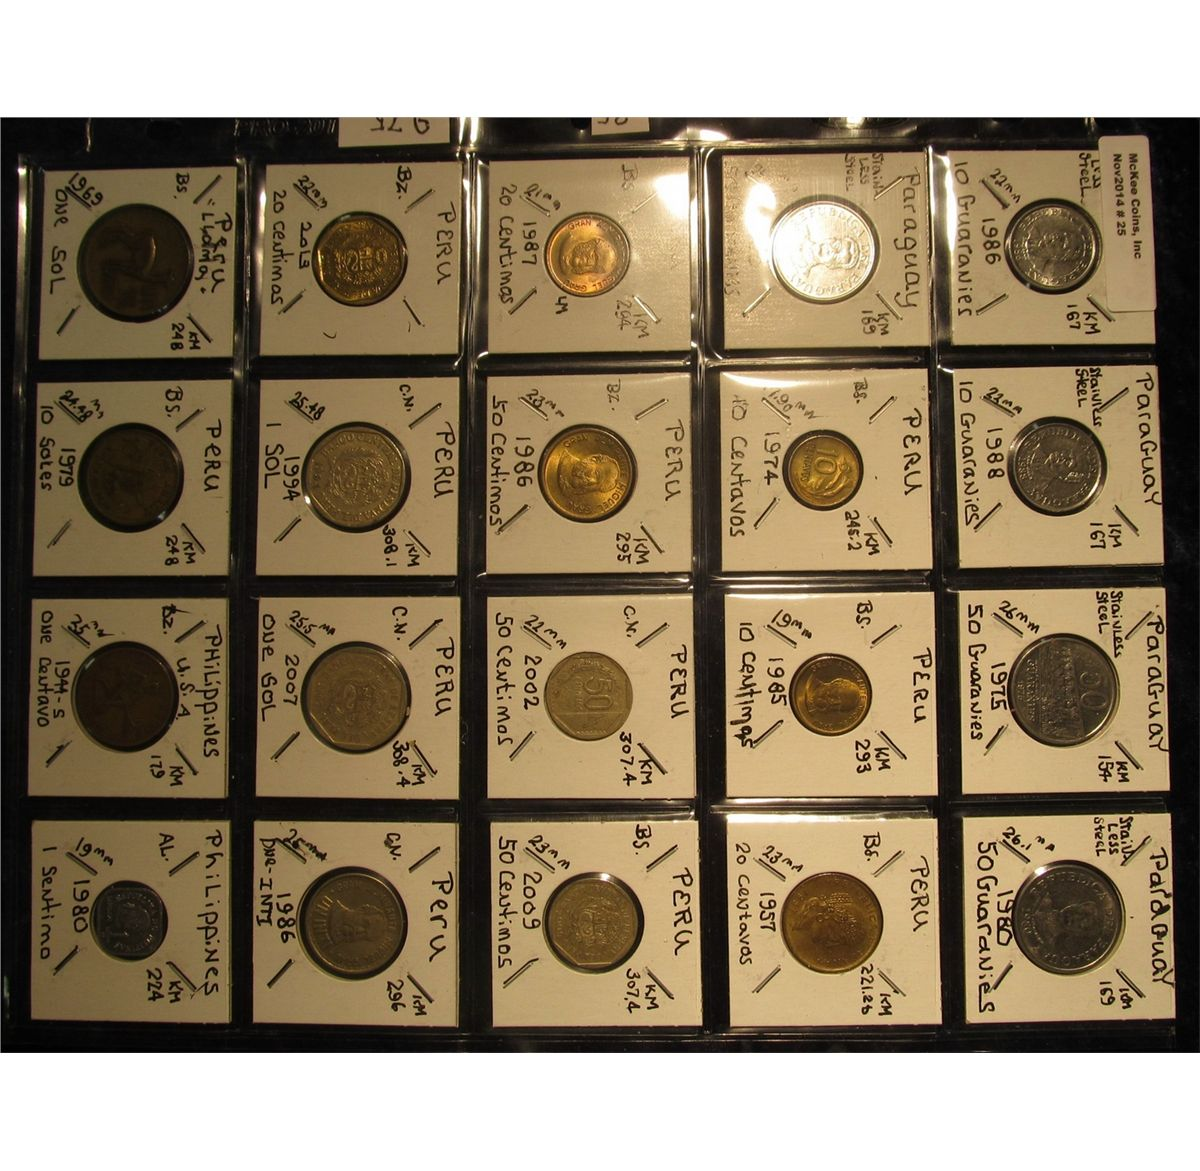 Plastic Coin Page Containing 20 Coins From Paraguay